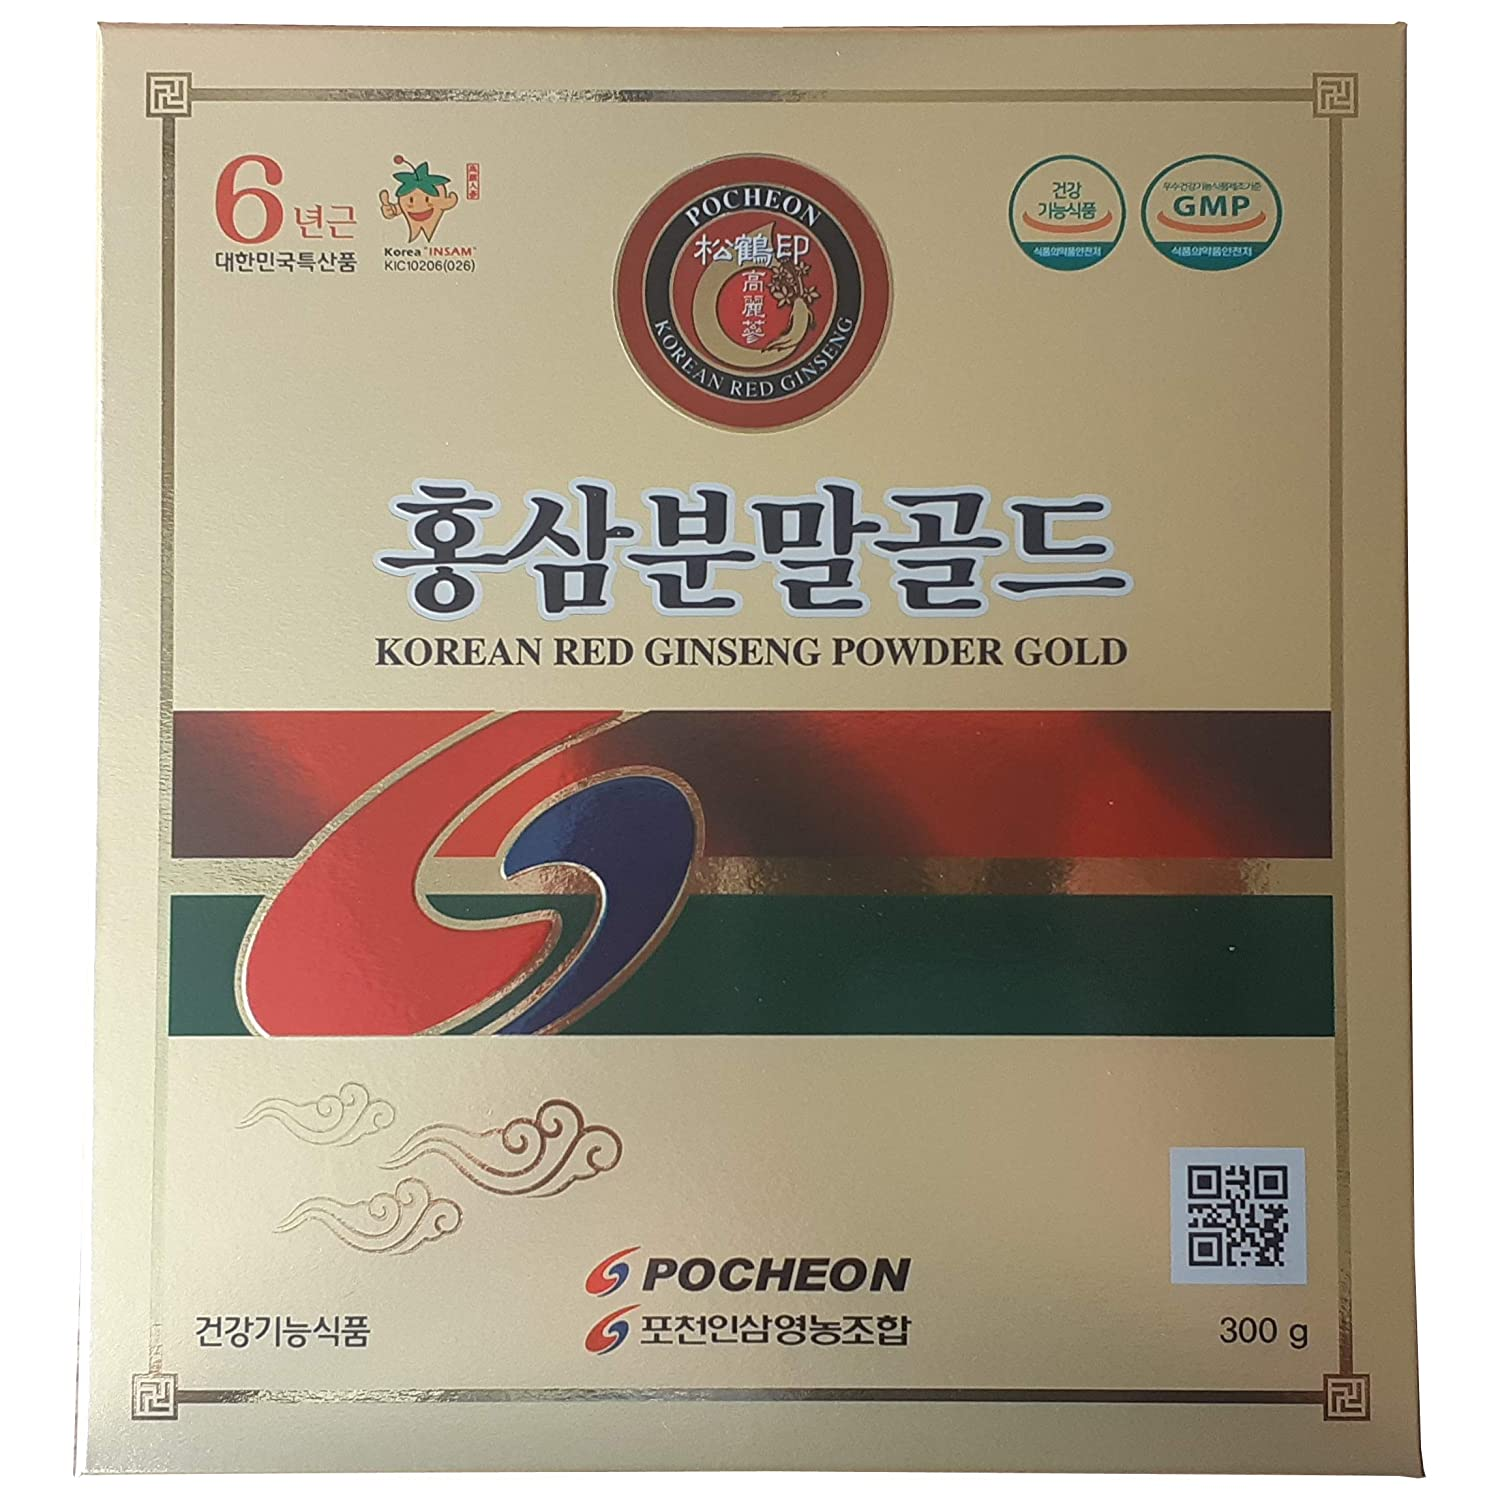 Pocheon 300g Korean Panax Red Ginseng Roots Powder Gold 6 Years, No Additives 100 Pure, High Ginsenoside